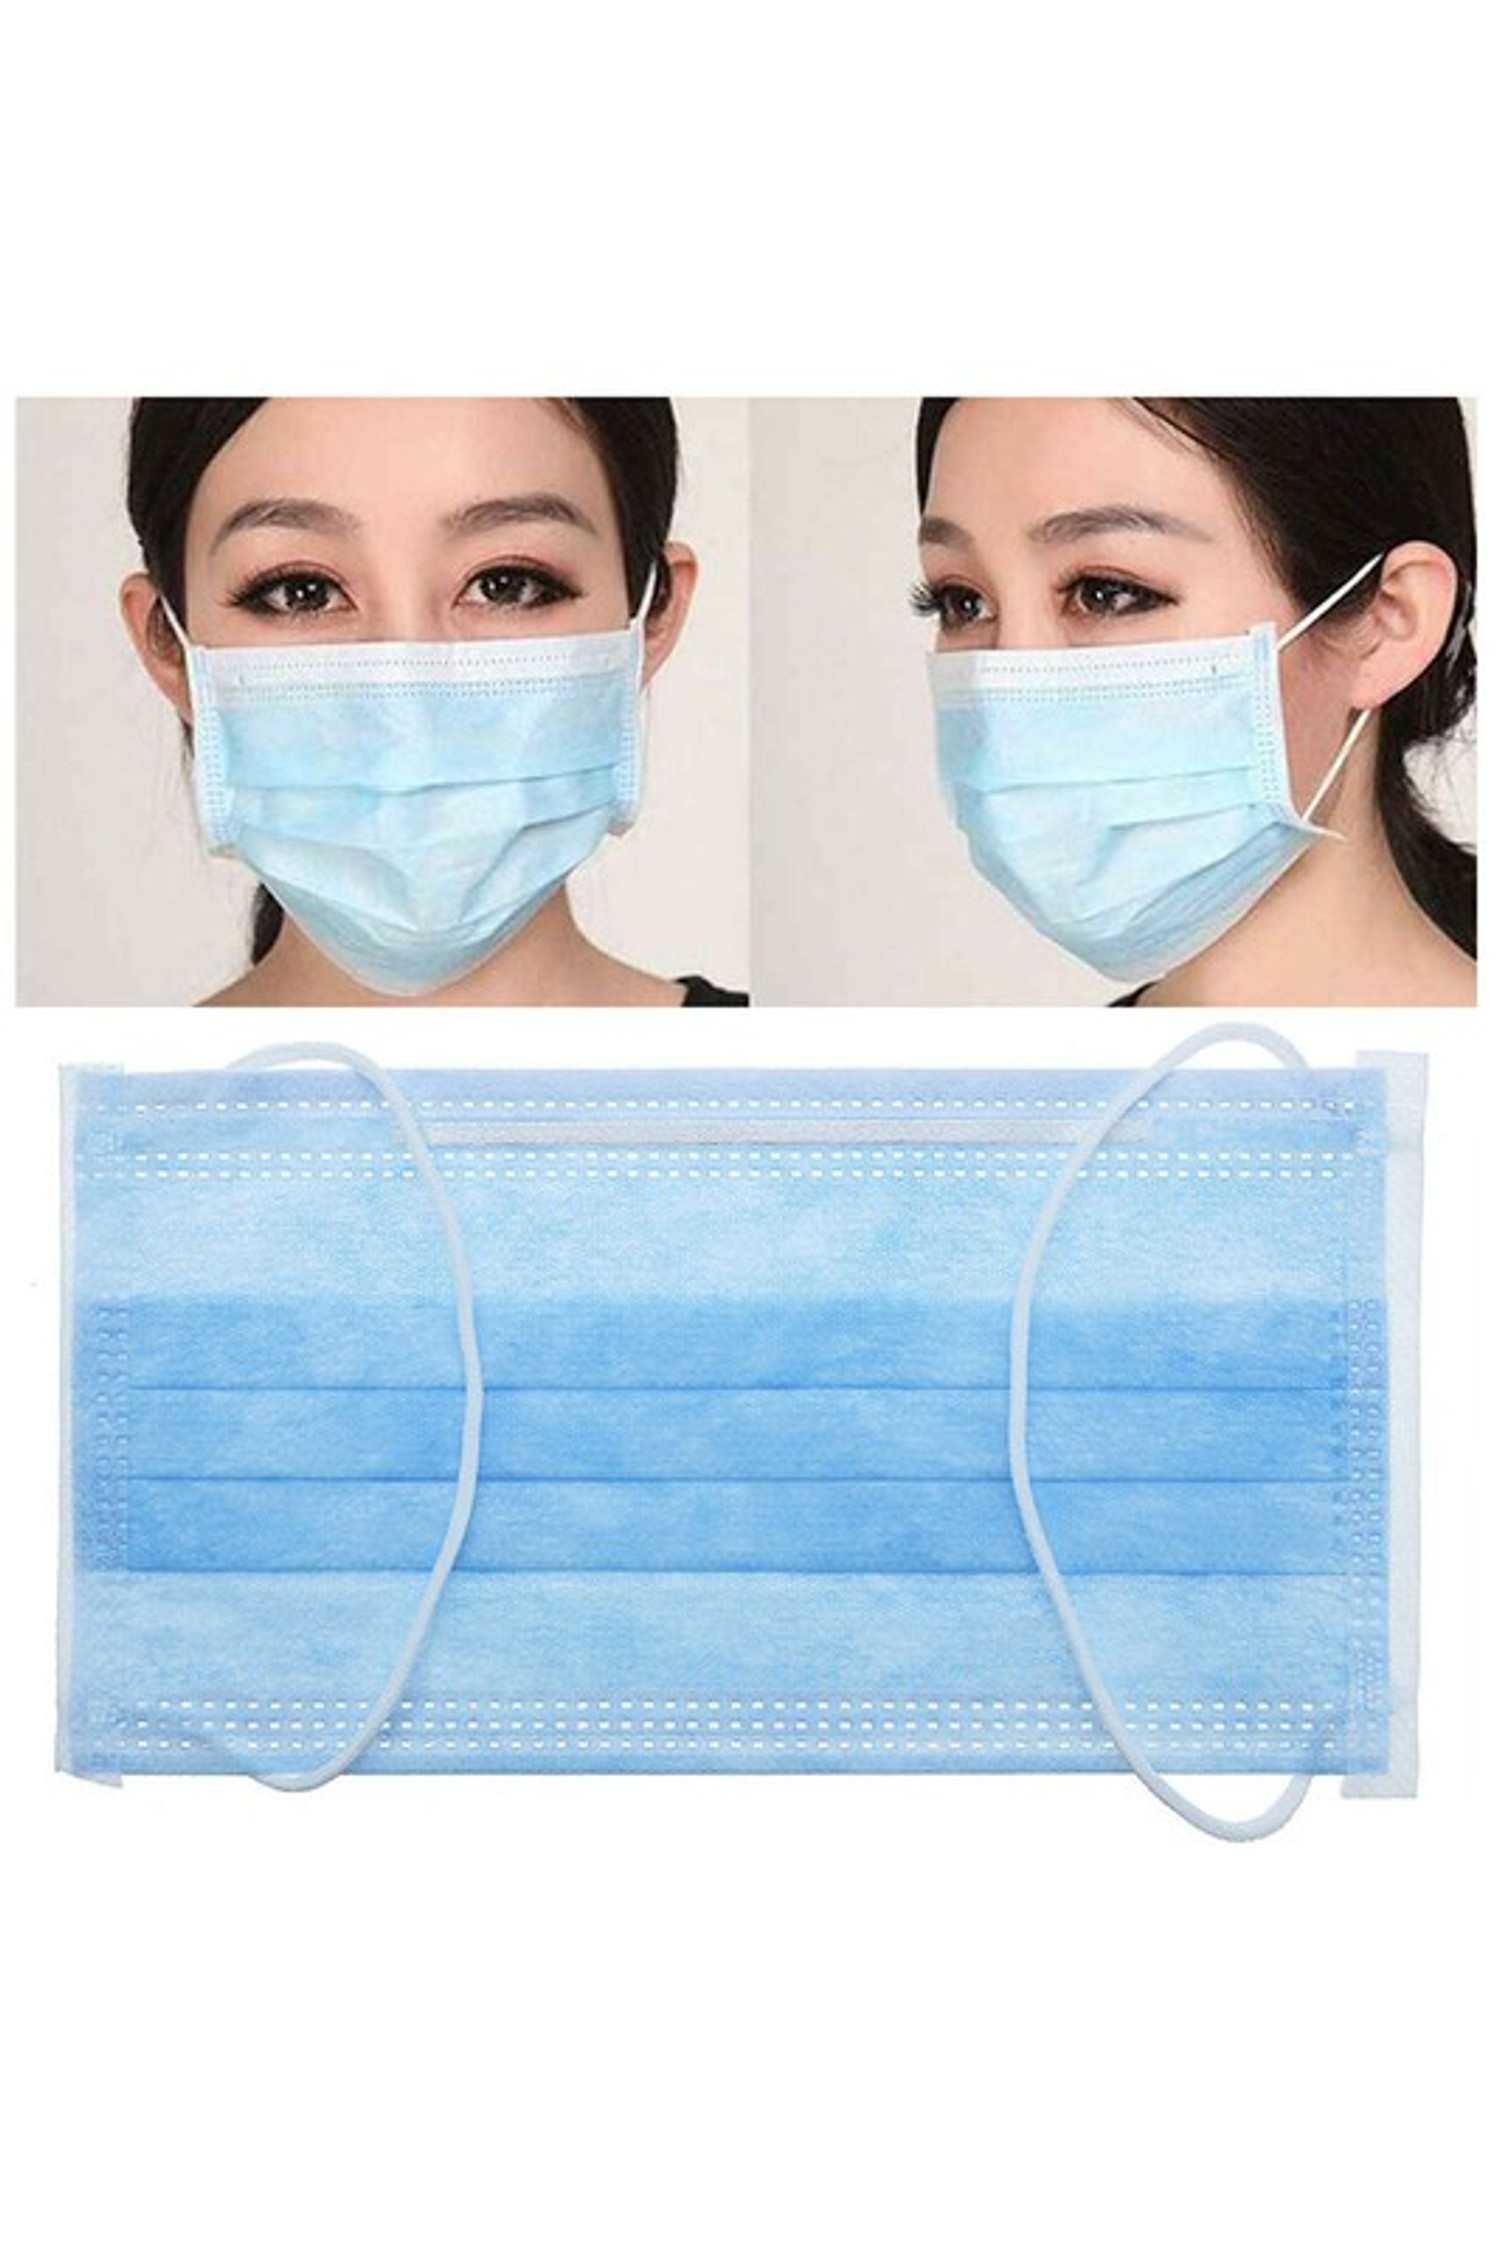 3 Ply Single Use Disposable Face Masks - 25 Pack